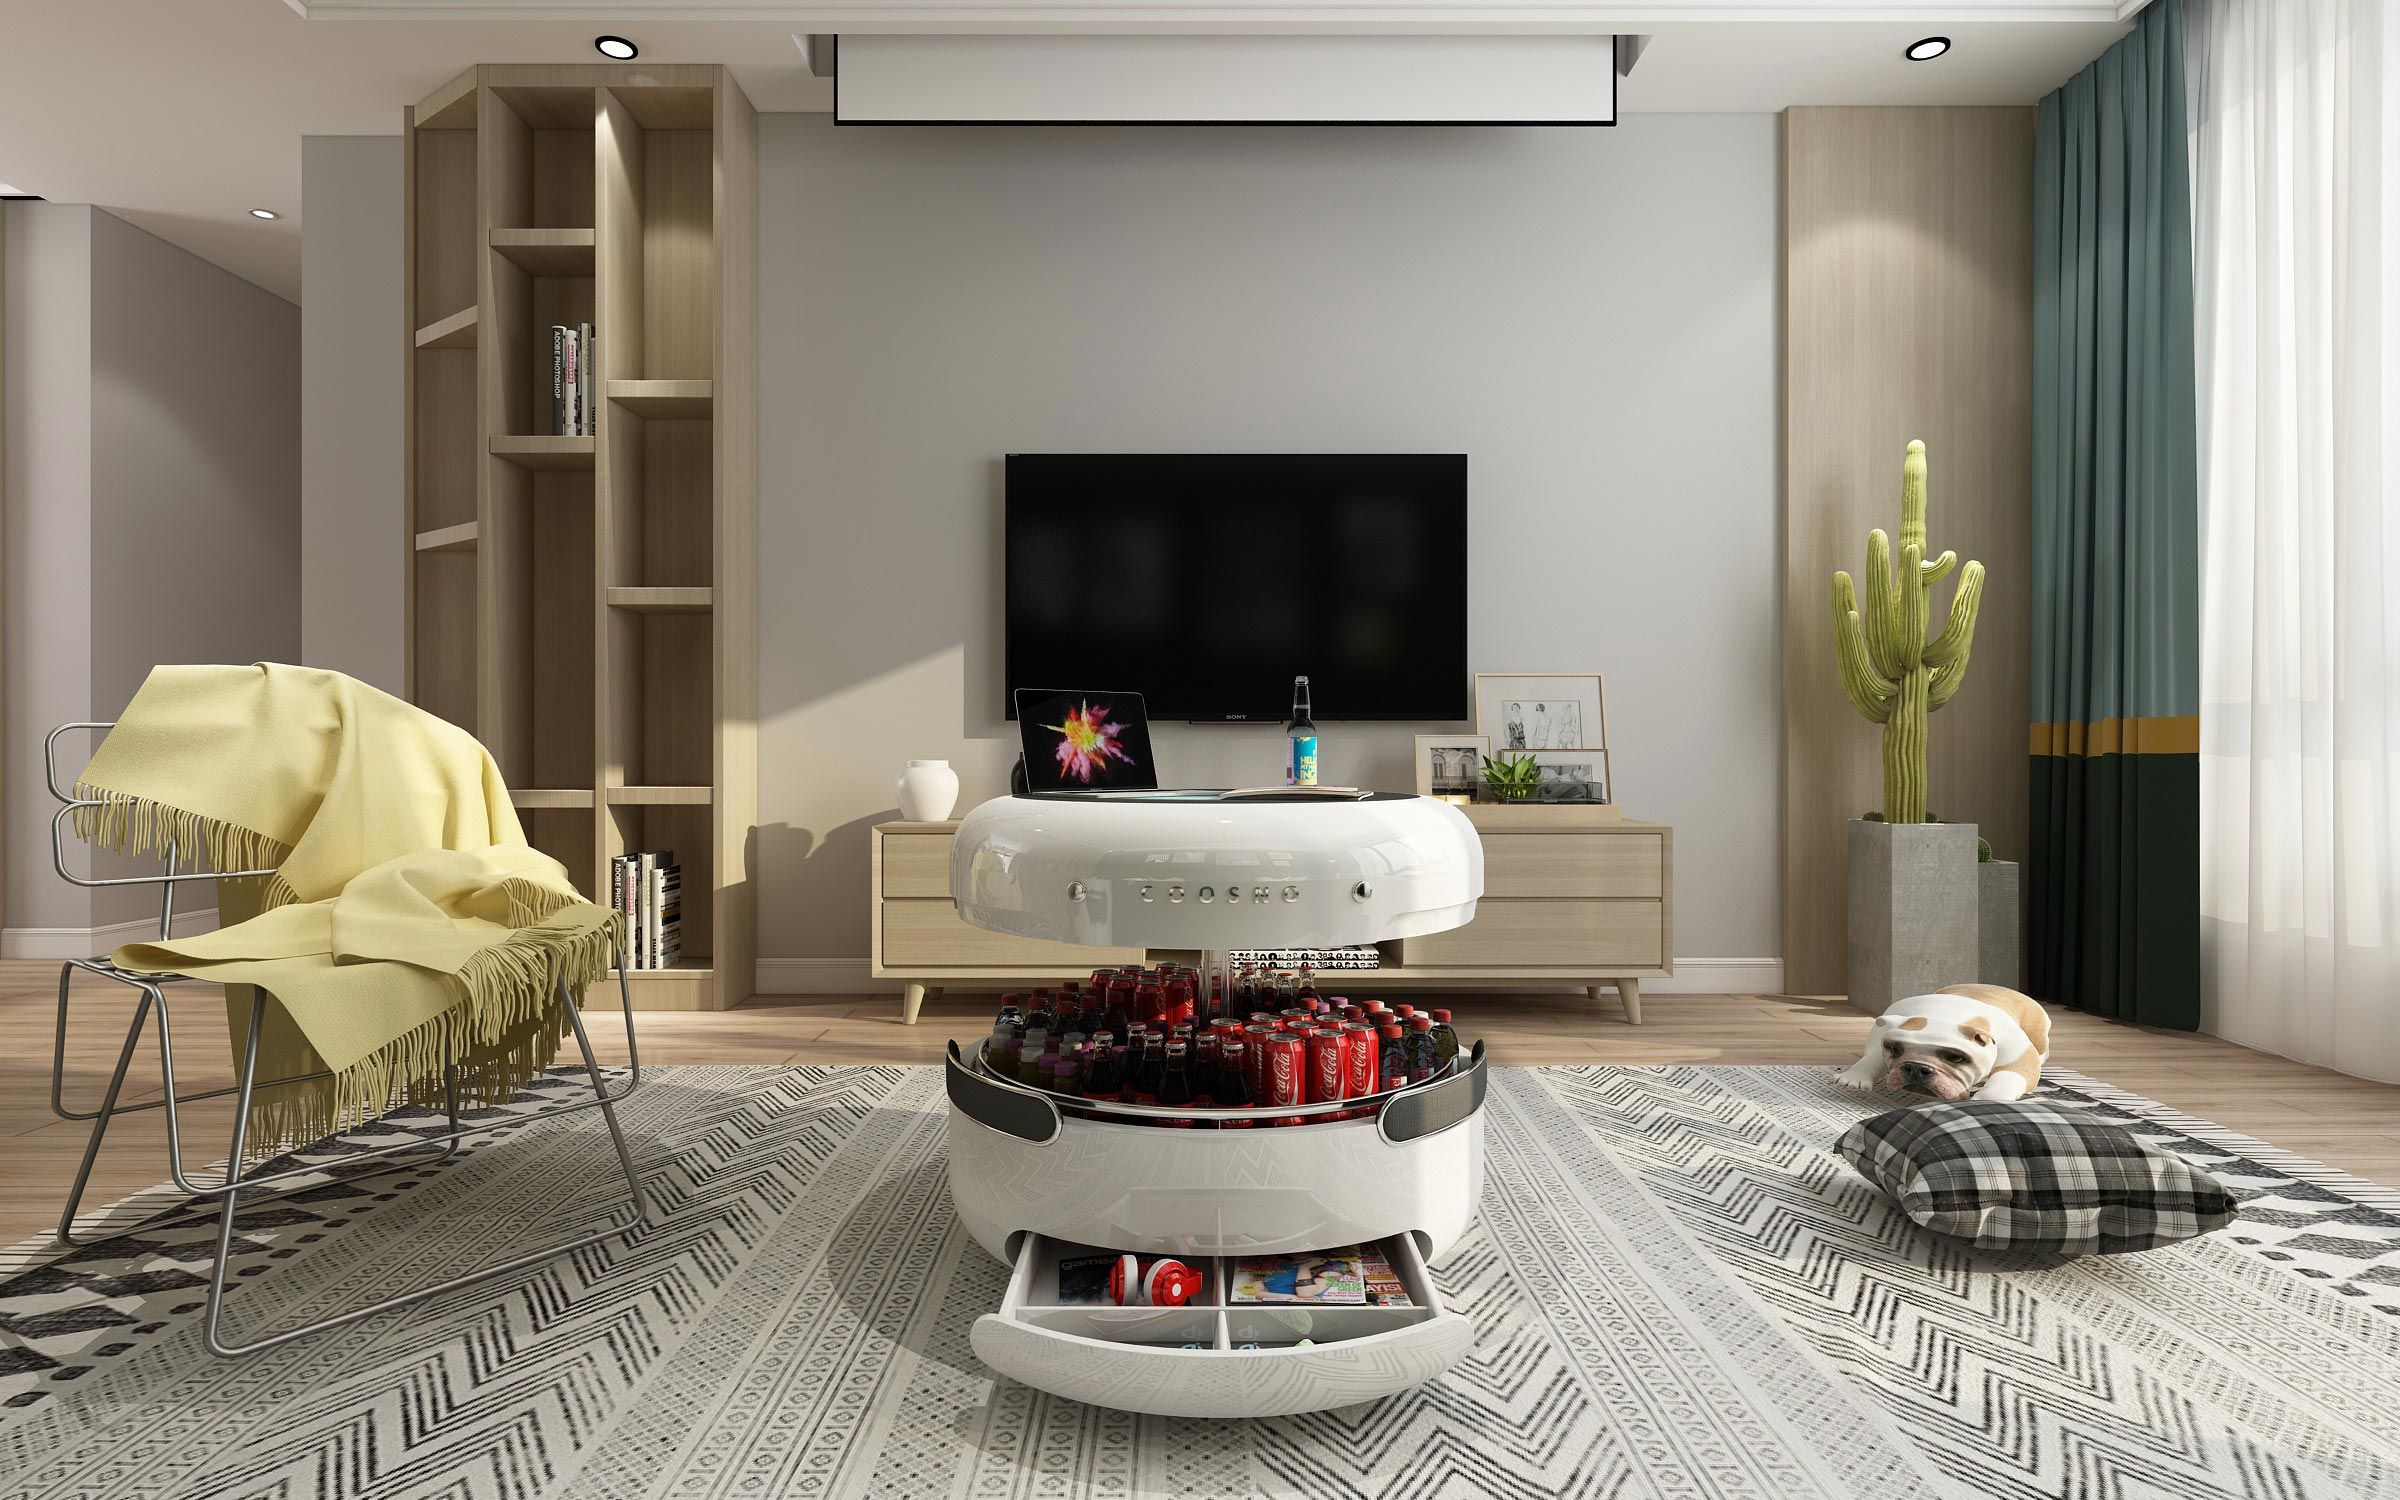 The Coosno Coffee Table Contains A Built In Refrigerator